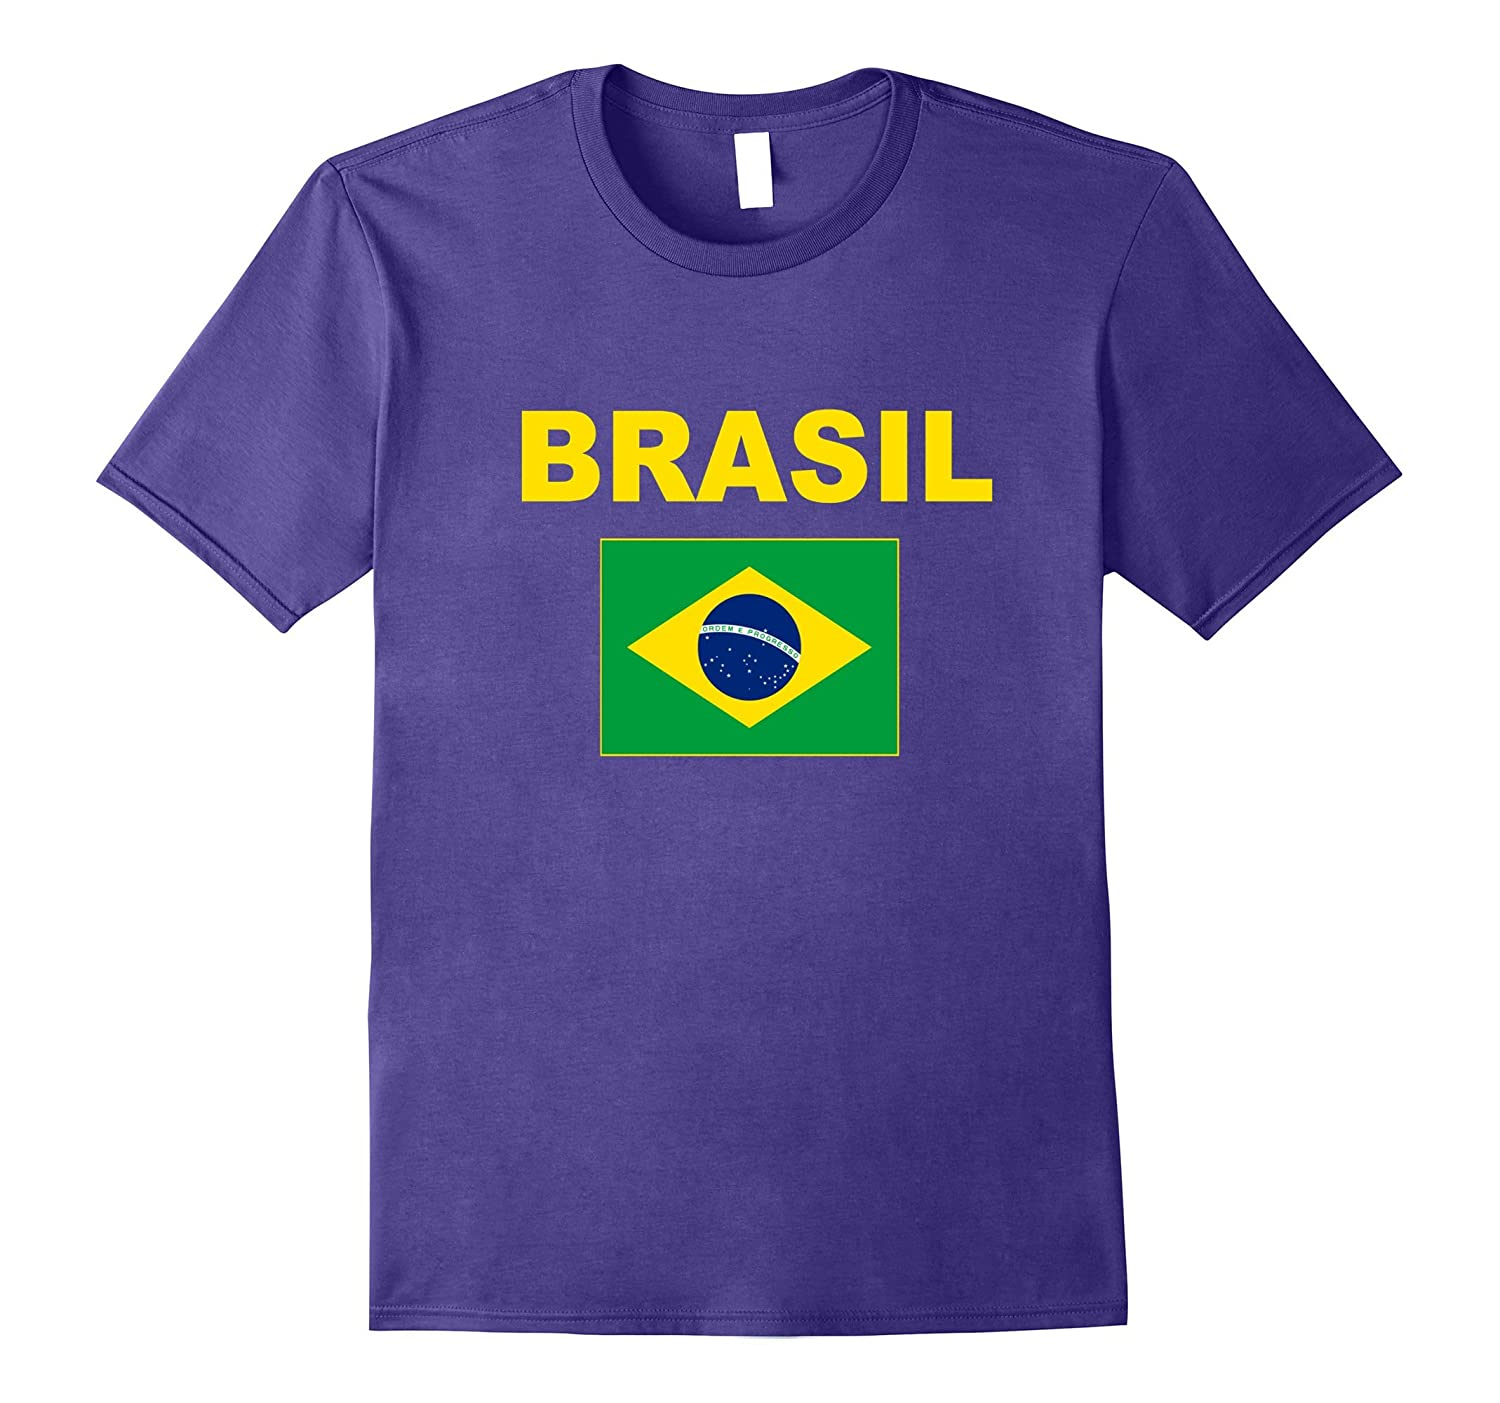 Brasil T-Shirt Flag Brazil Shirt Cool Unisex Fashion Top Tee-Vaci